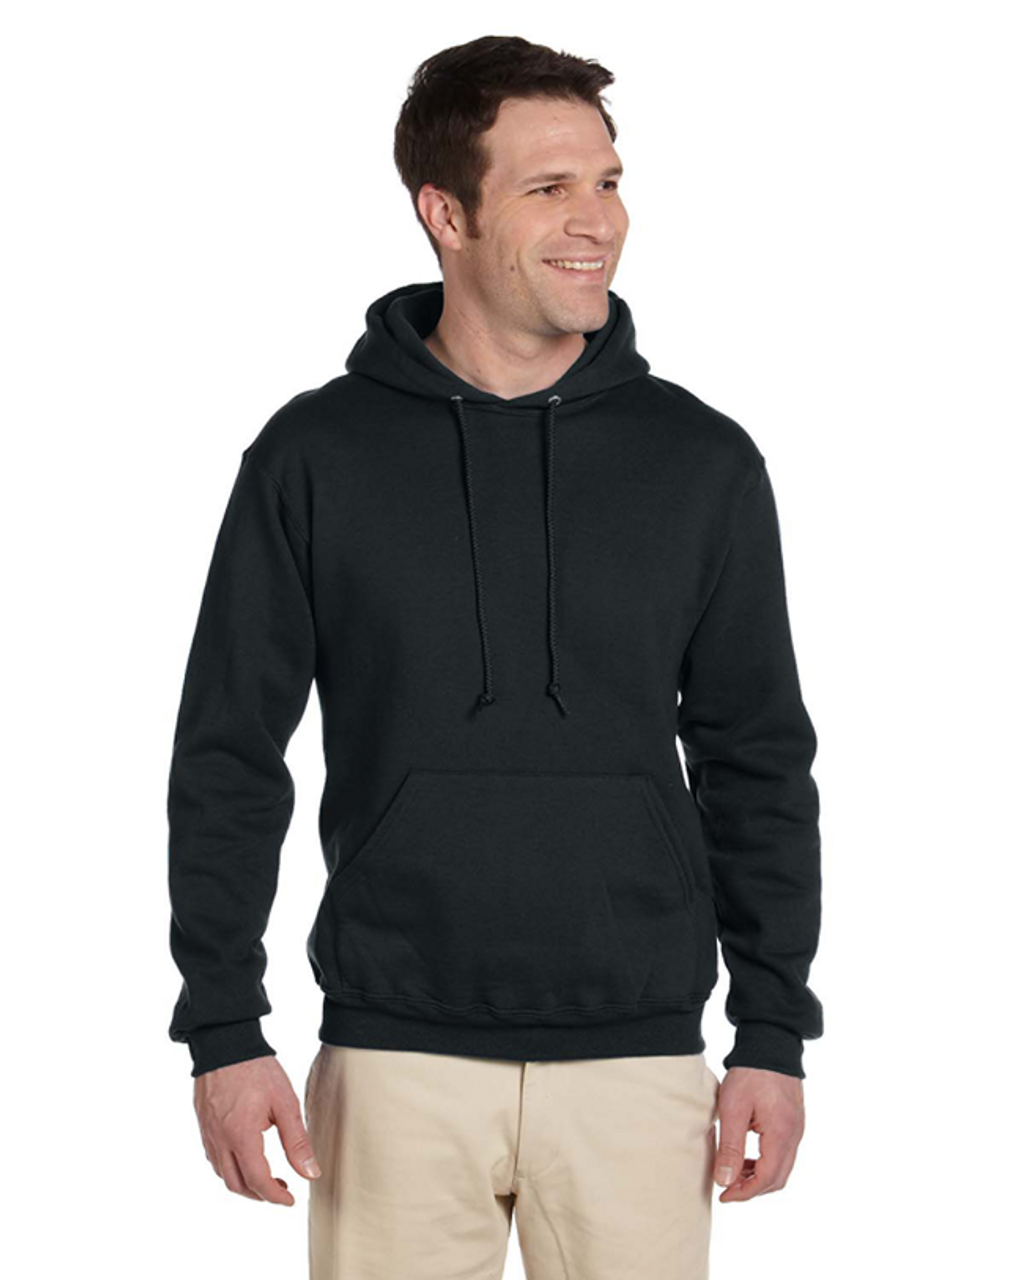 Black  4997 Jerzees 50/50 Super Sweats® NuBlend® Fleece Pullover Hoodie | Blankclothing.ca